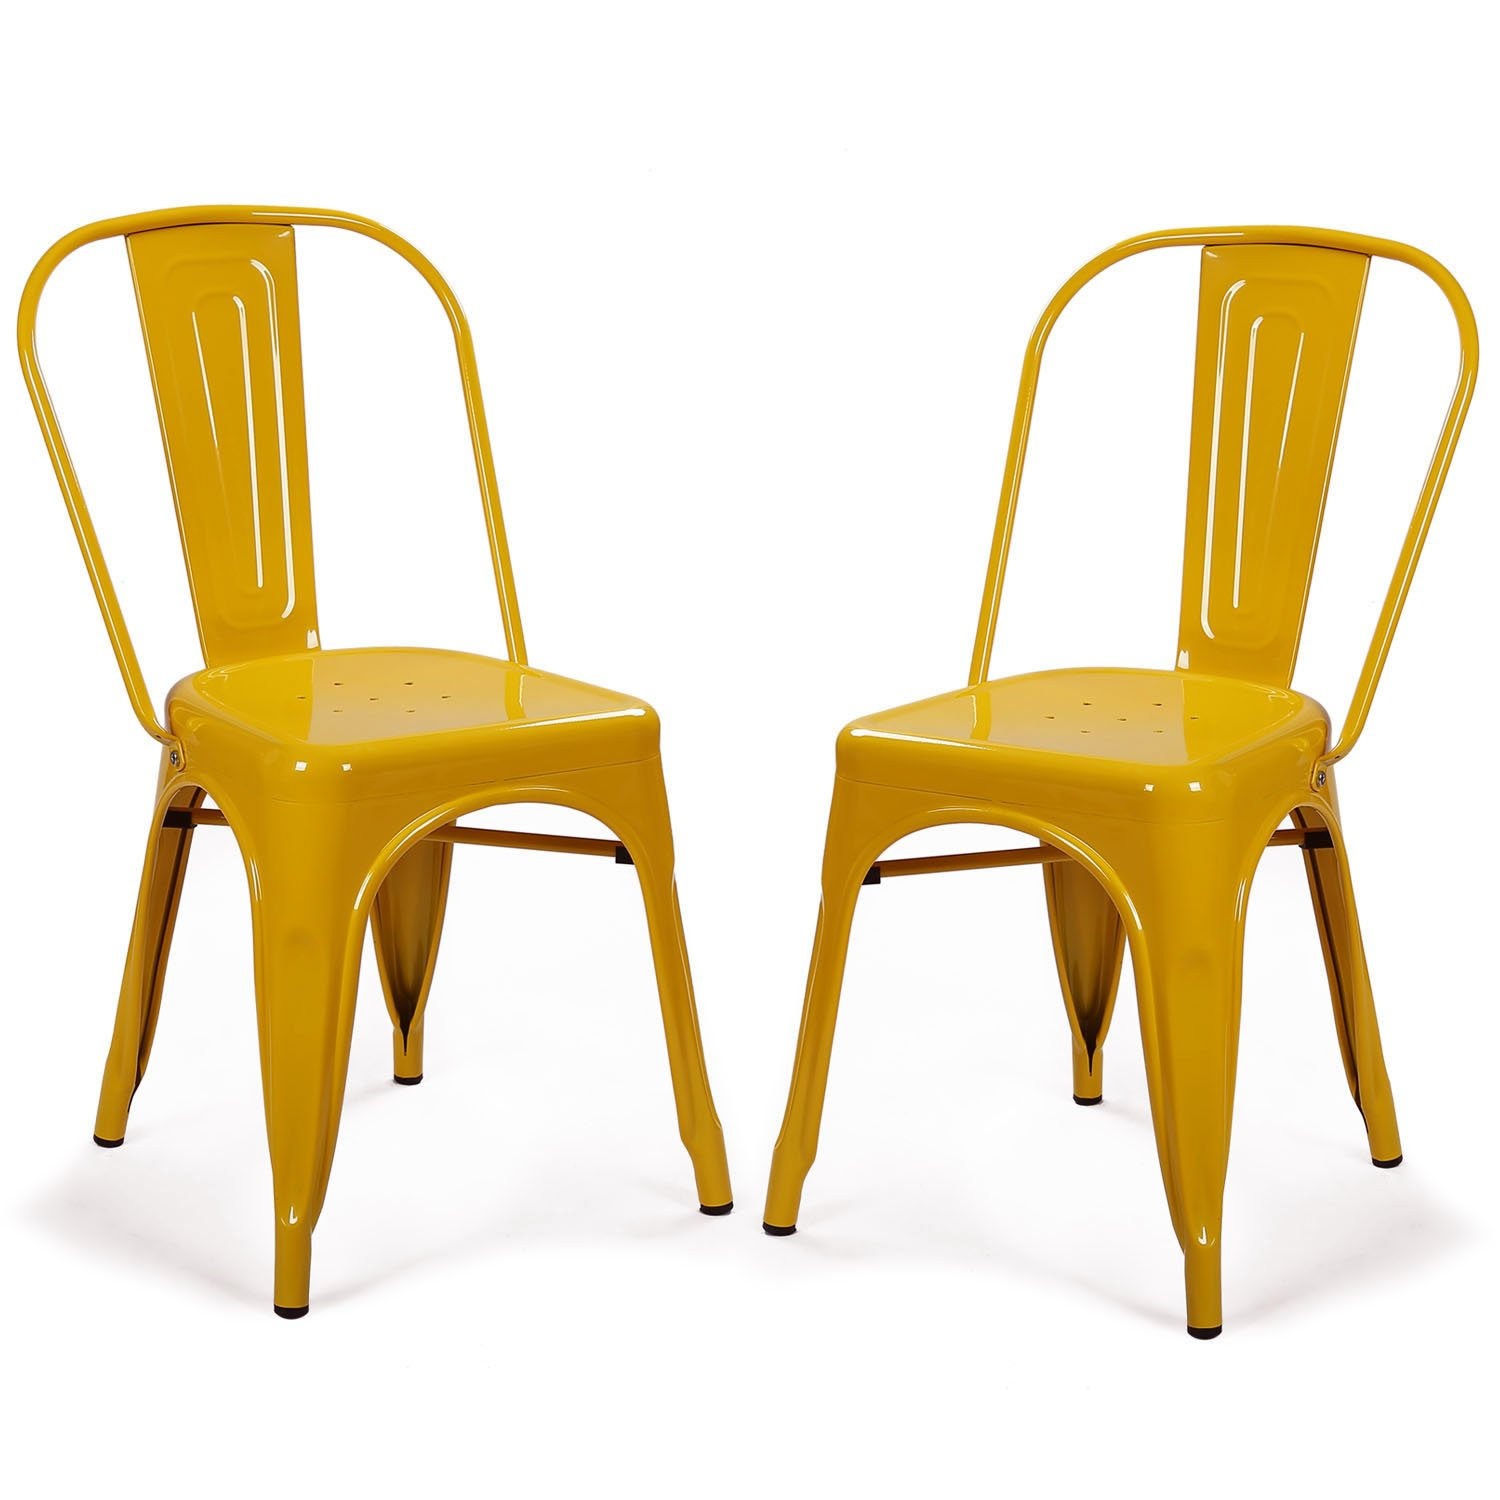 Yellow Metal Chairs Adeco Metal Stackable Industrial Chic Dining Bistro Cafe